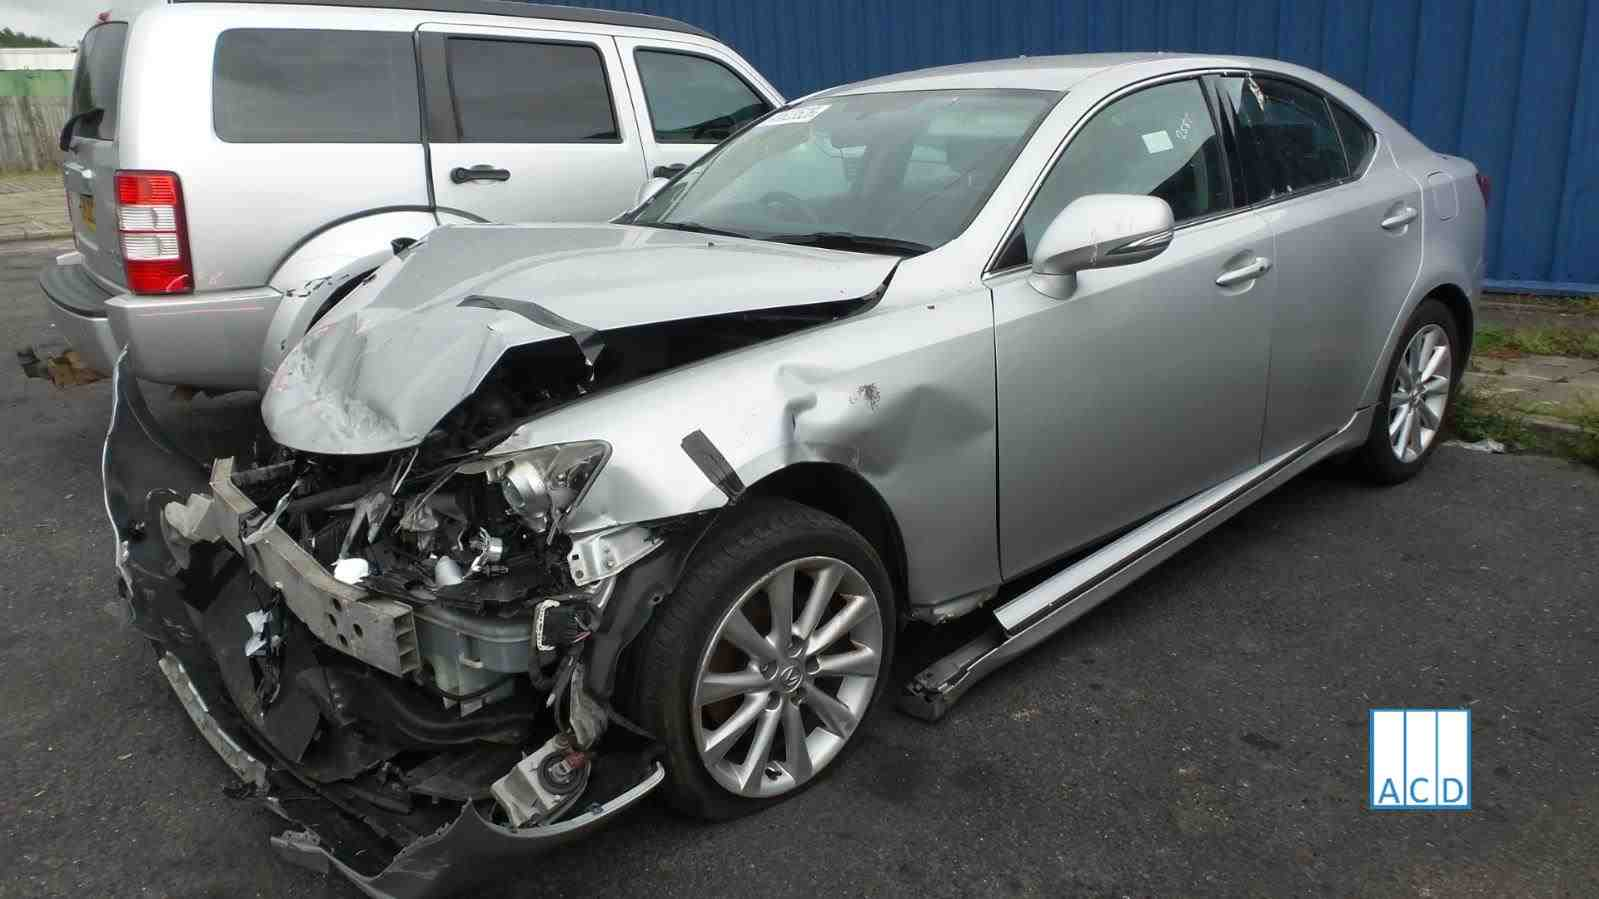 Lexus IS220D SE 2.2L Diesel 6-Speed Manual 2008 #2582 01